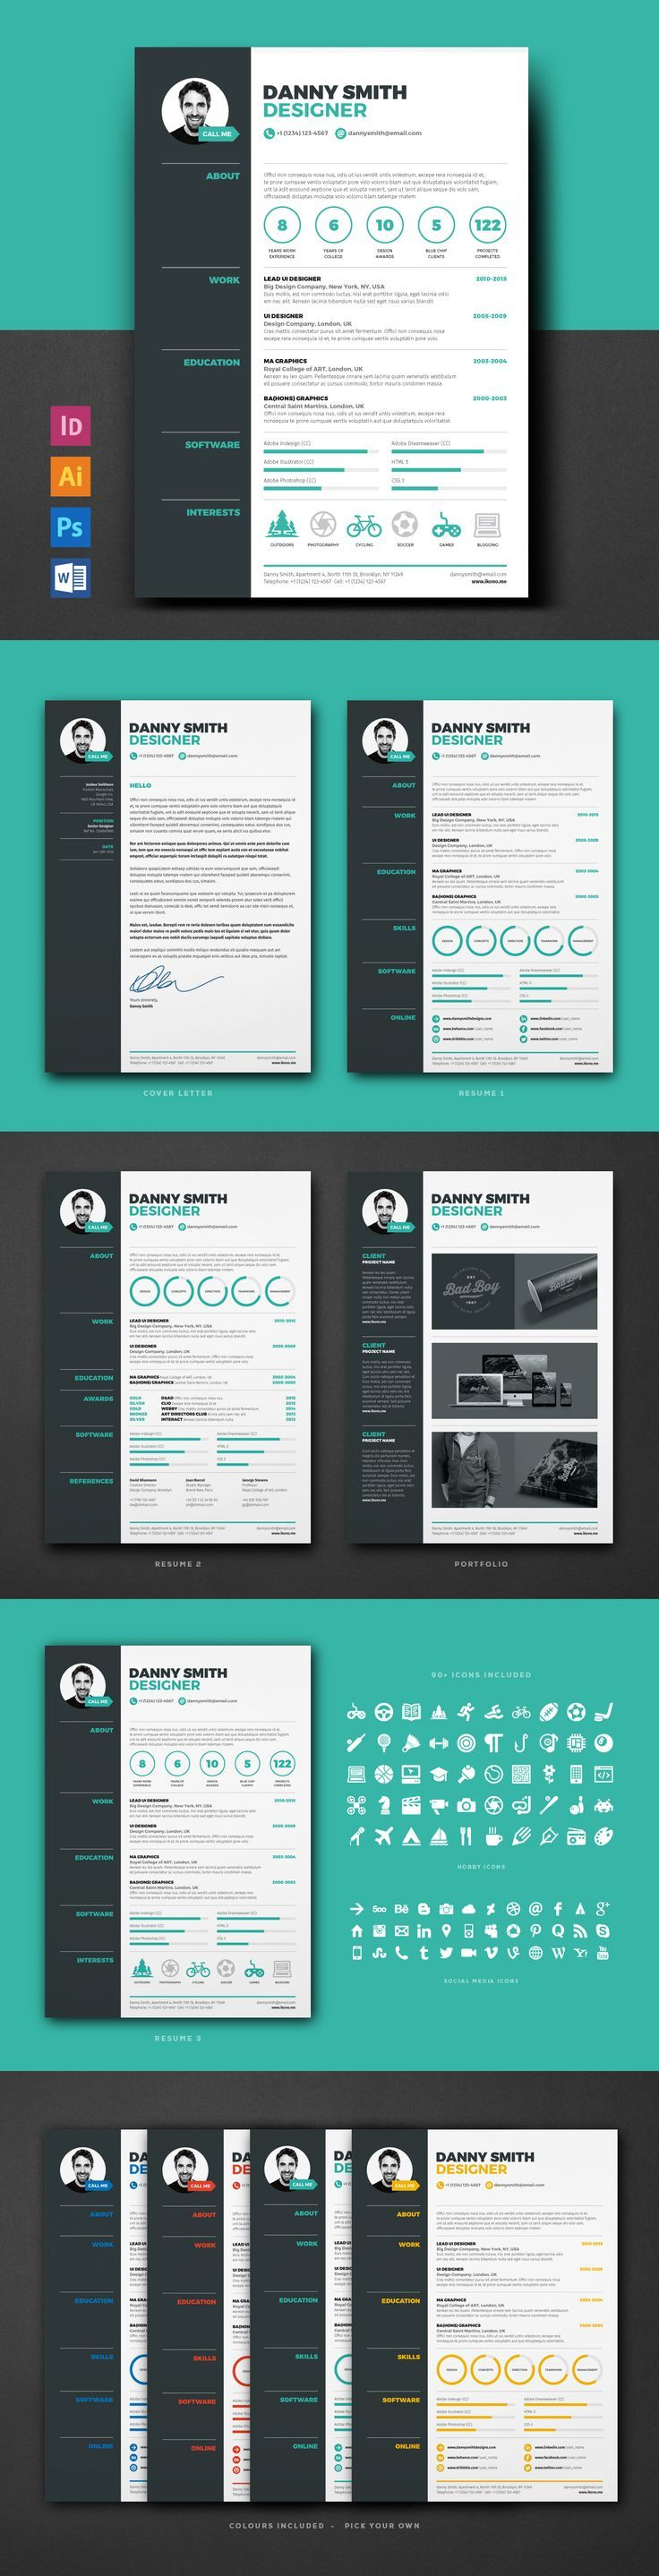 #RESUME 3 features clean, functional and #professional layout created to help recruiters focus on your relevant skills and experience.Each #resume design has a number of pre-built layout options so you can concentrate on just adding your information. The…